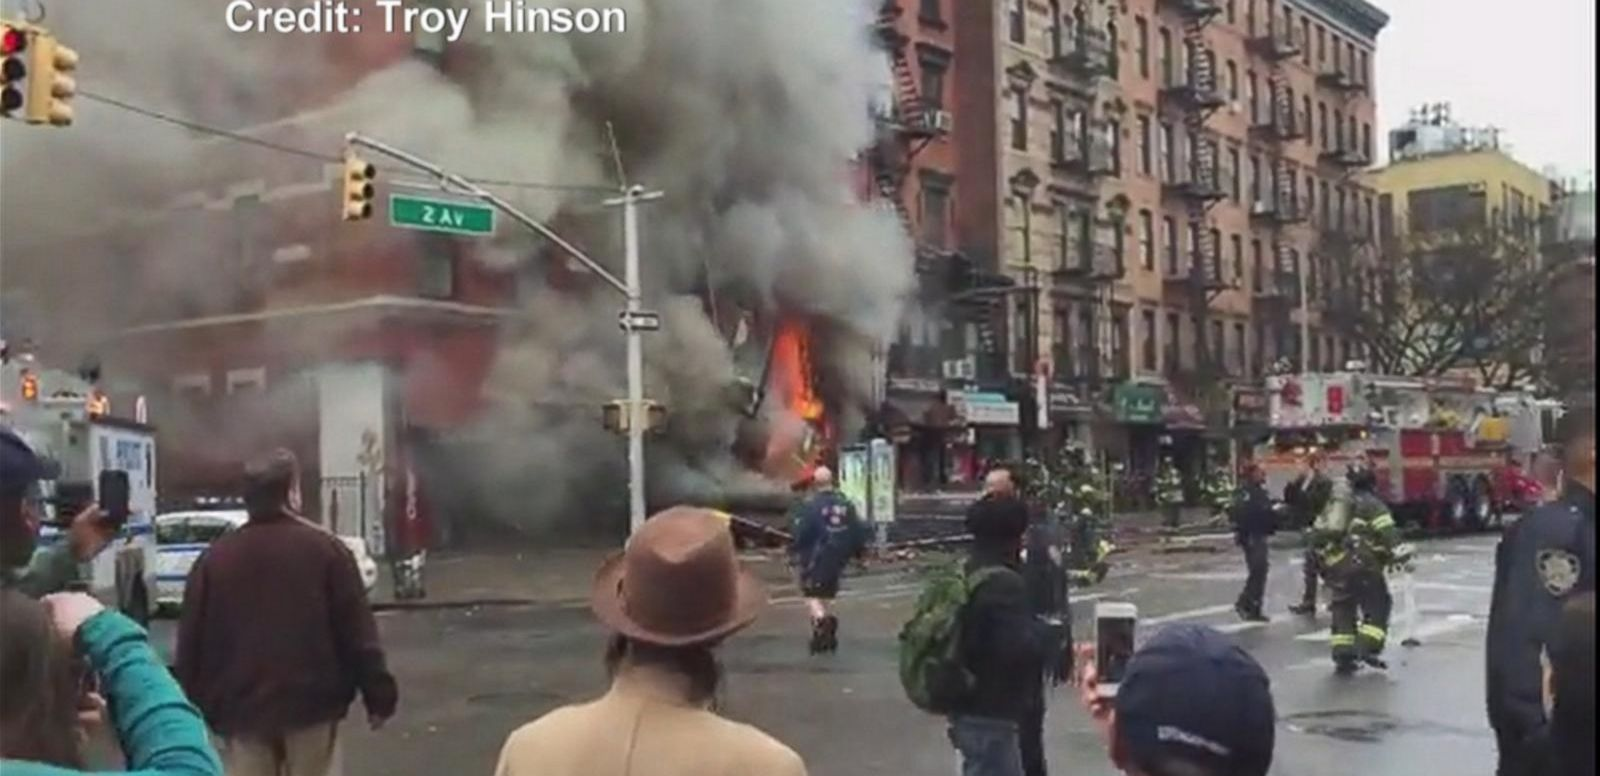 VIDEO: New York City Building Explosion Captured by Eyewitness